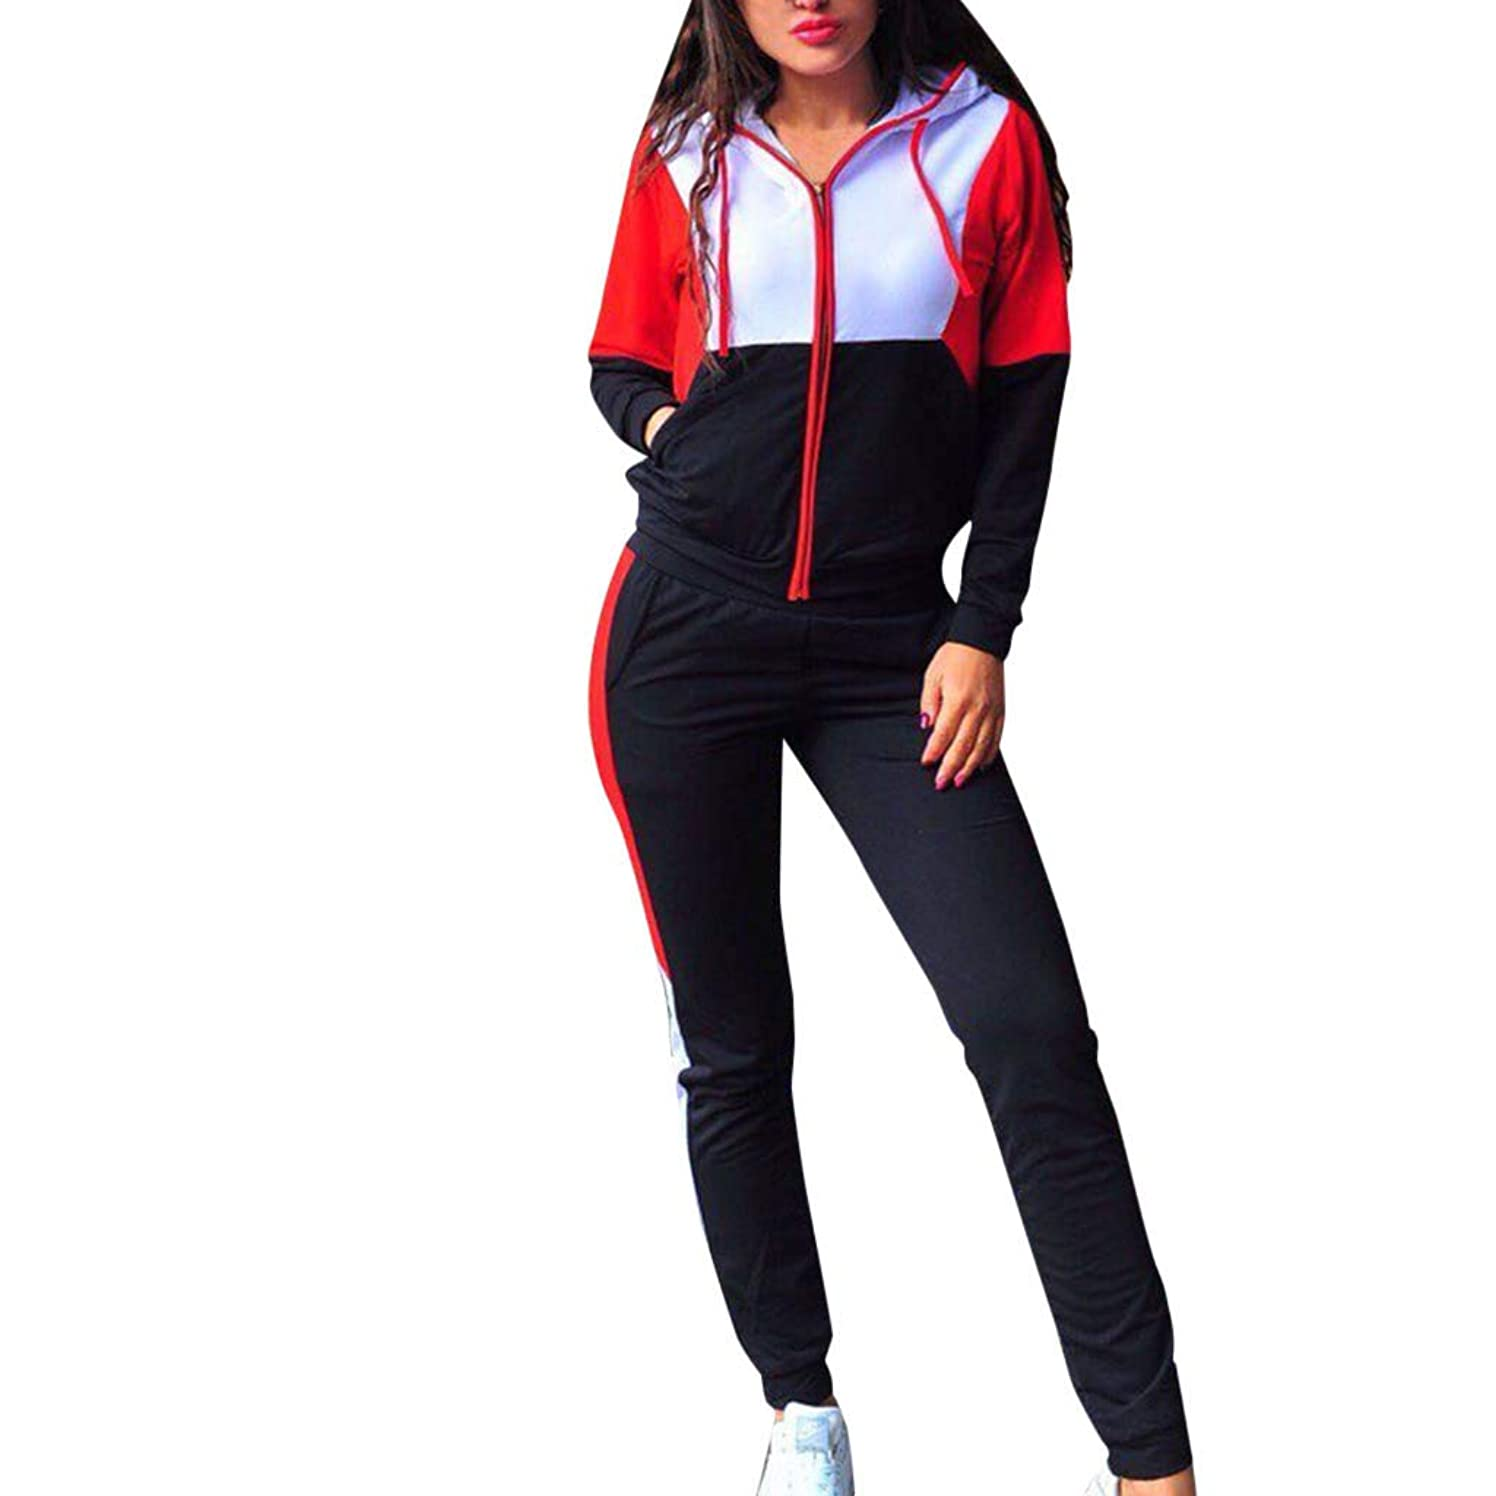 Fashion Women 2 Piece Block Color Hoodie Tracksuit Long Sleeve Sweatshirt Pant Sport Outfit Set